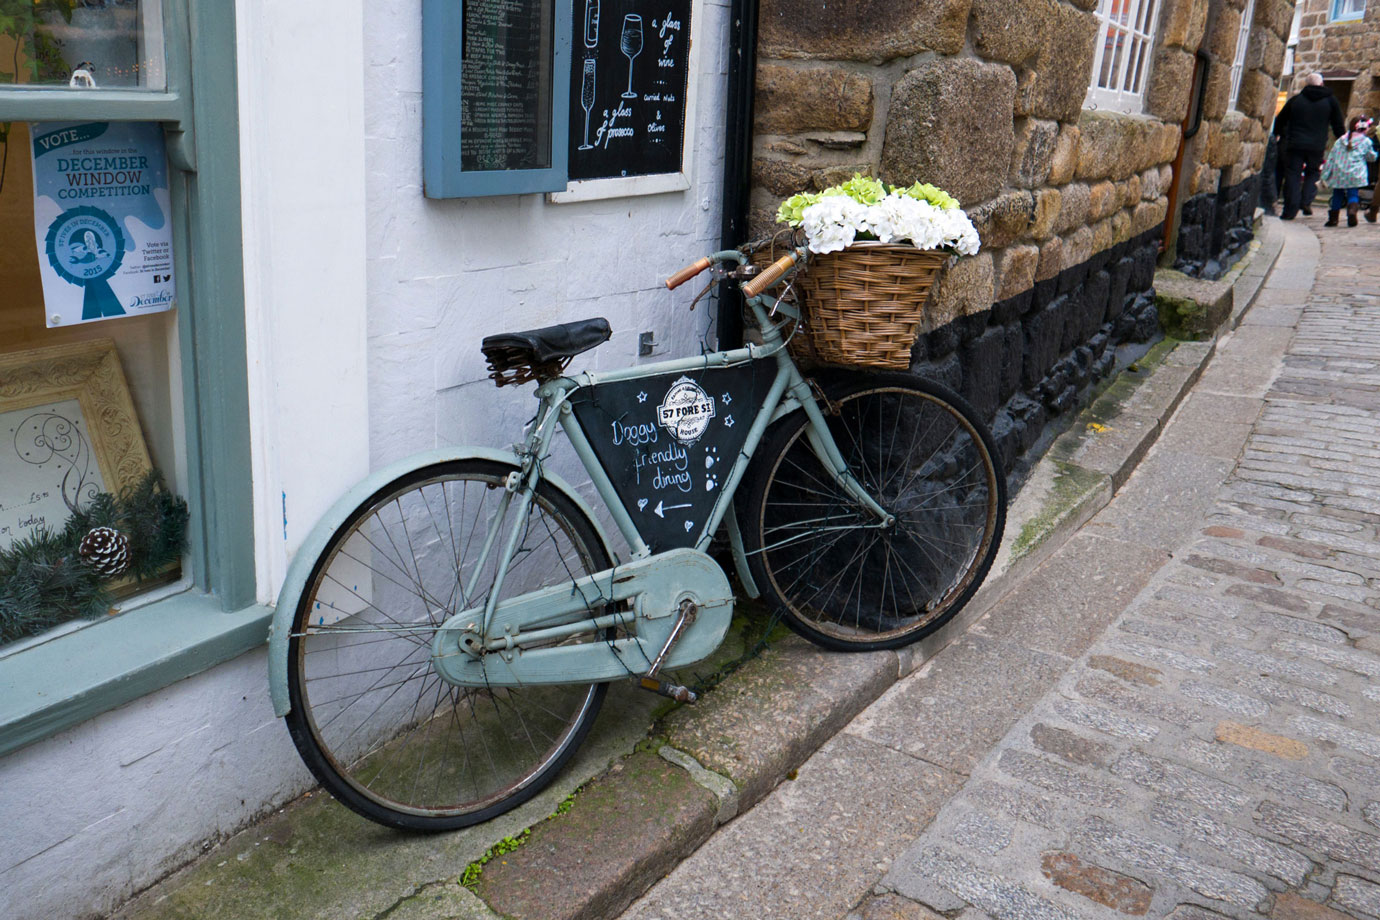 Bicycle outside shop in St. Ives, Cornwall